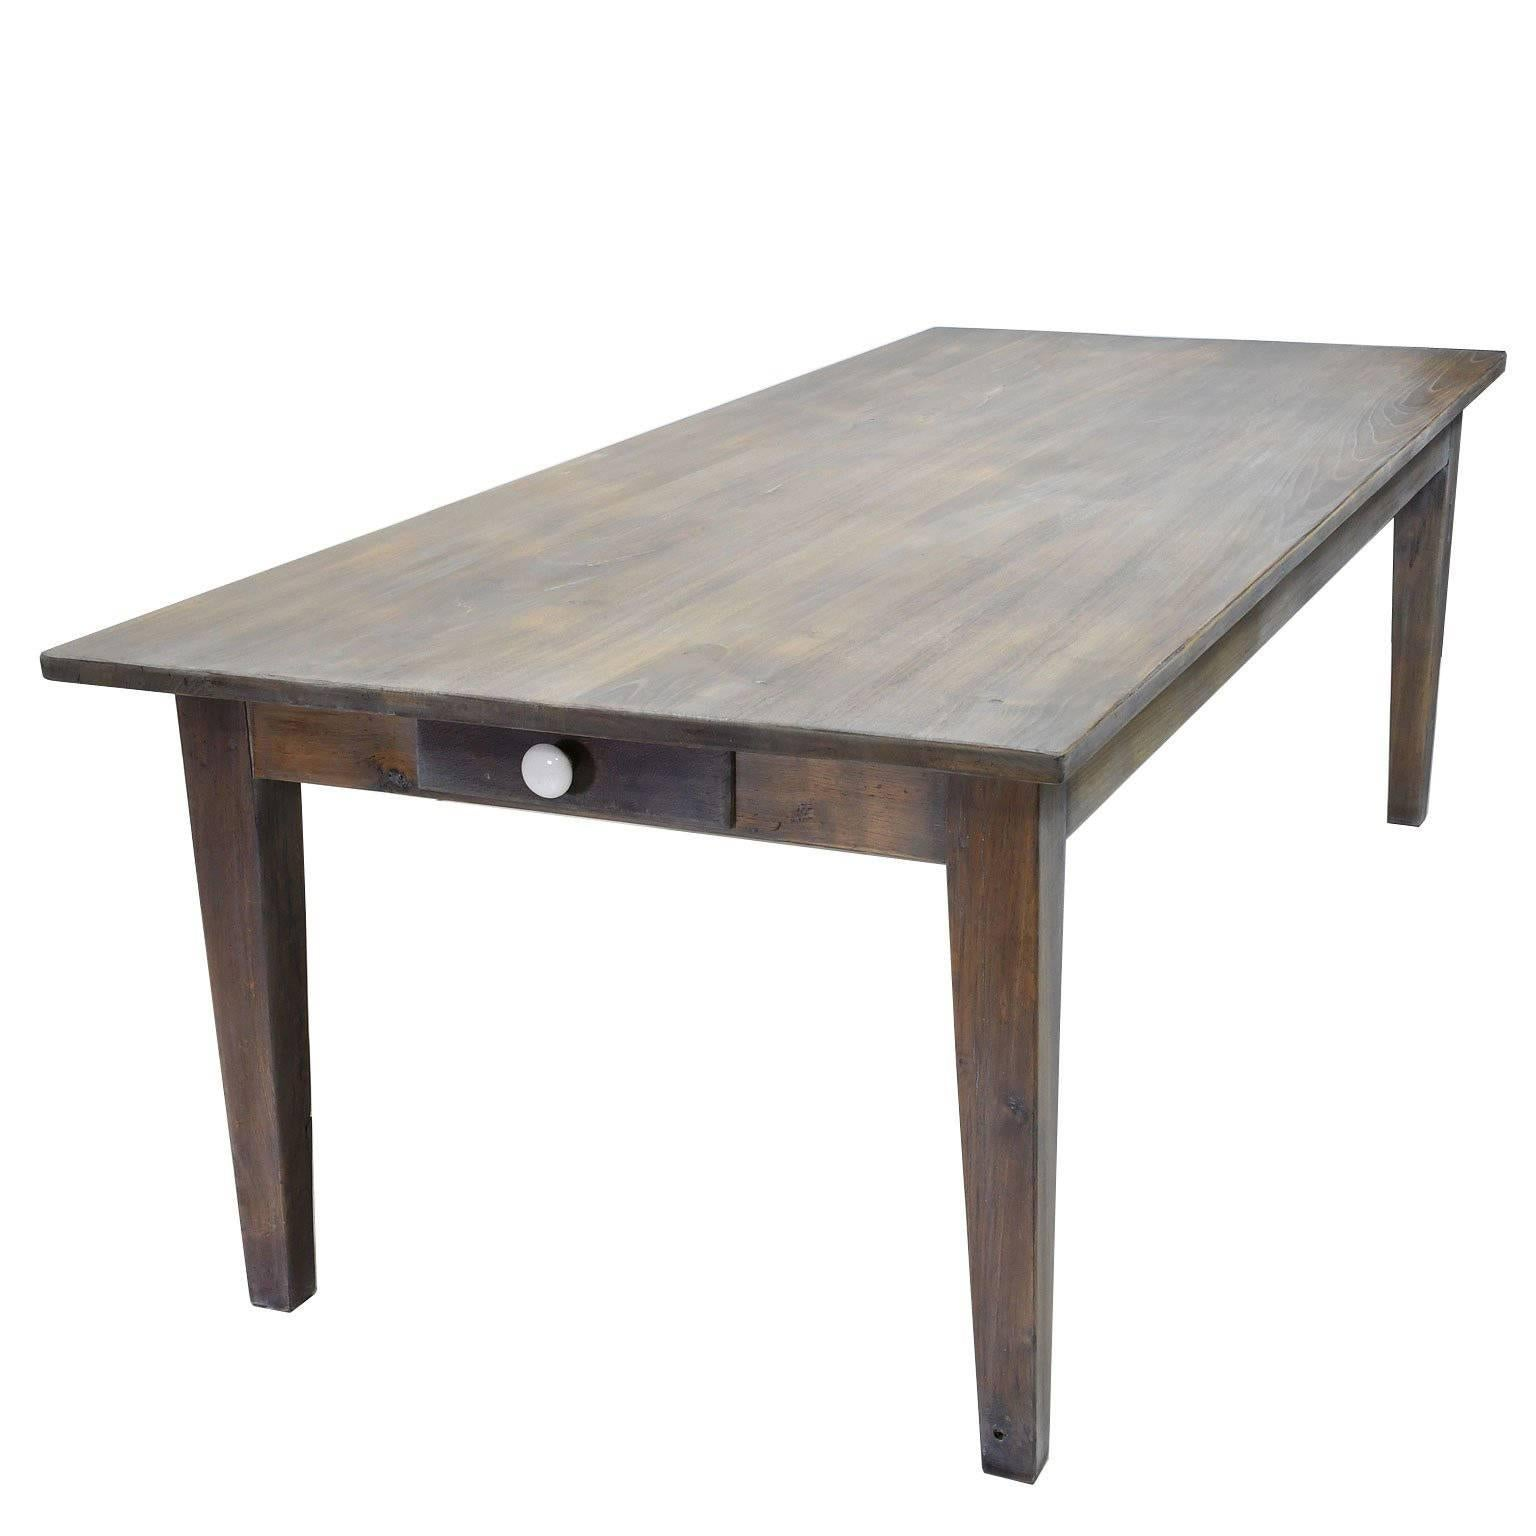 Beau 8u0027 Farmhouse Dining Or Kitchen Table In Re Purposed Oak With Fumed Taupe